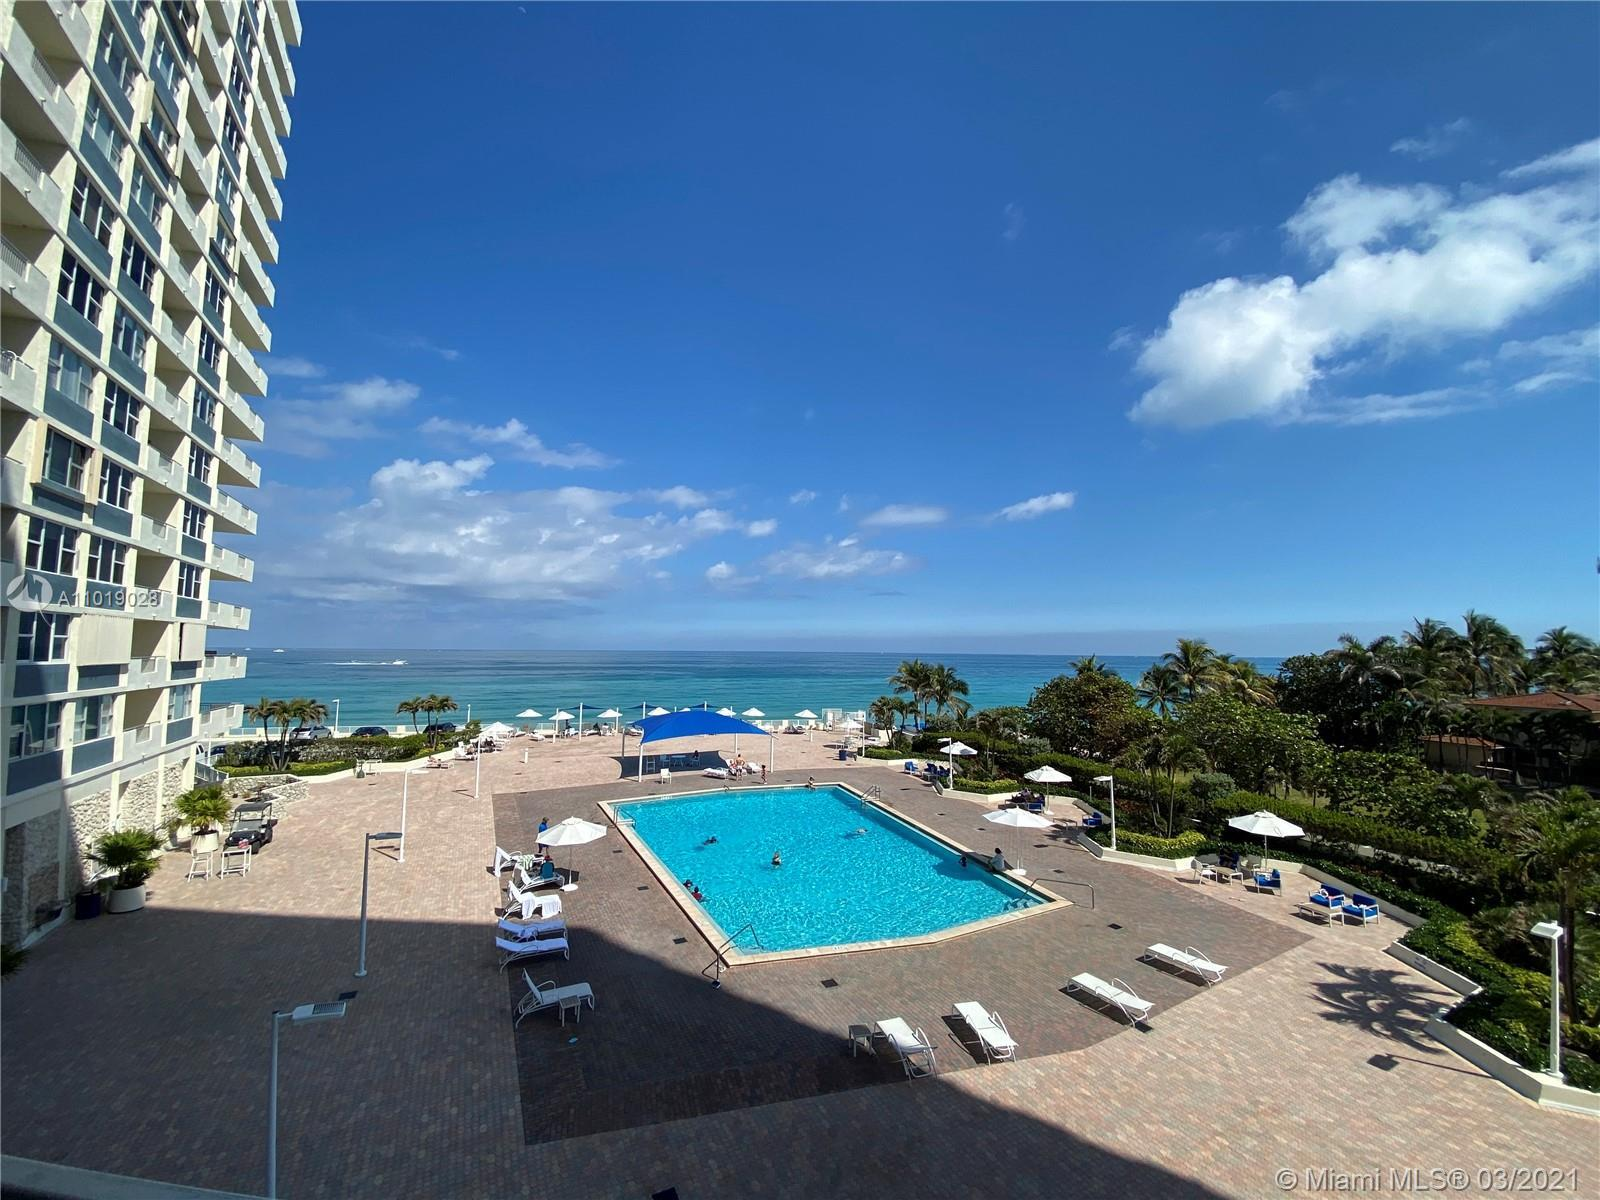 Beautiful Ocean Front Apartment. Centrally Located in Hallandale Beach, Fully furnished, appliances